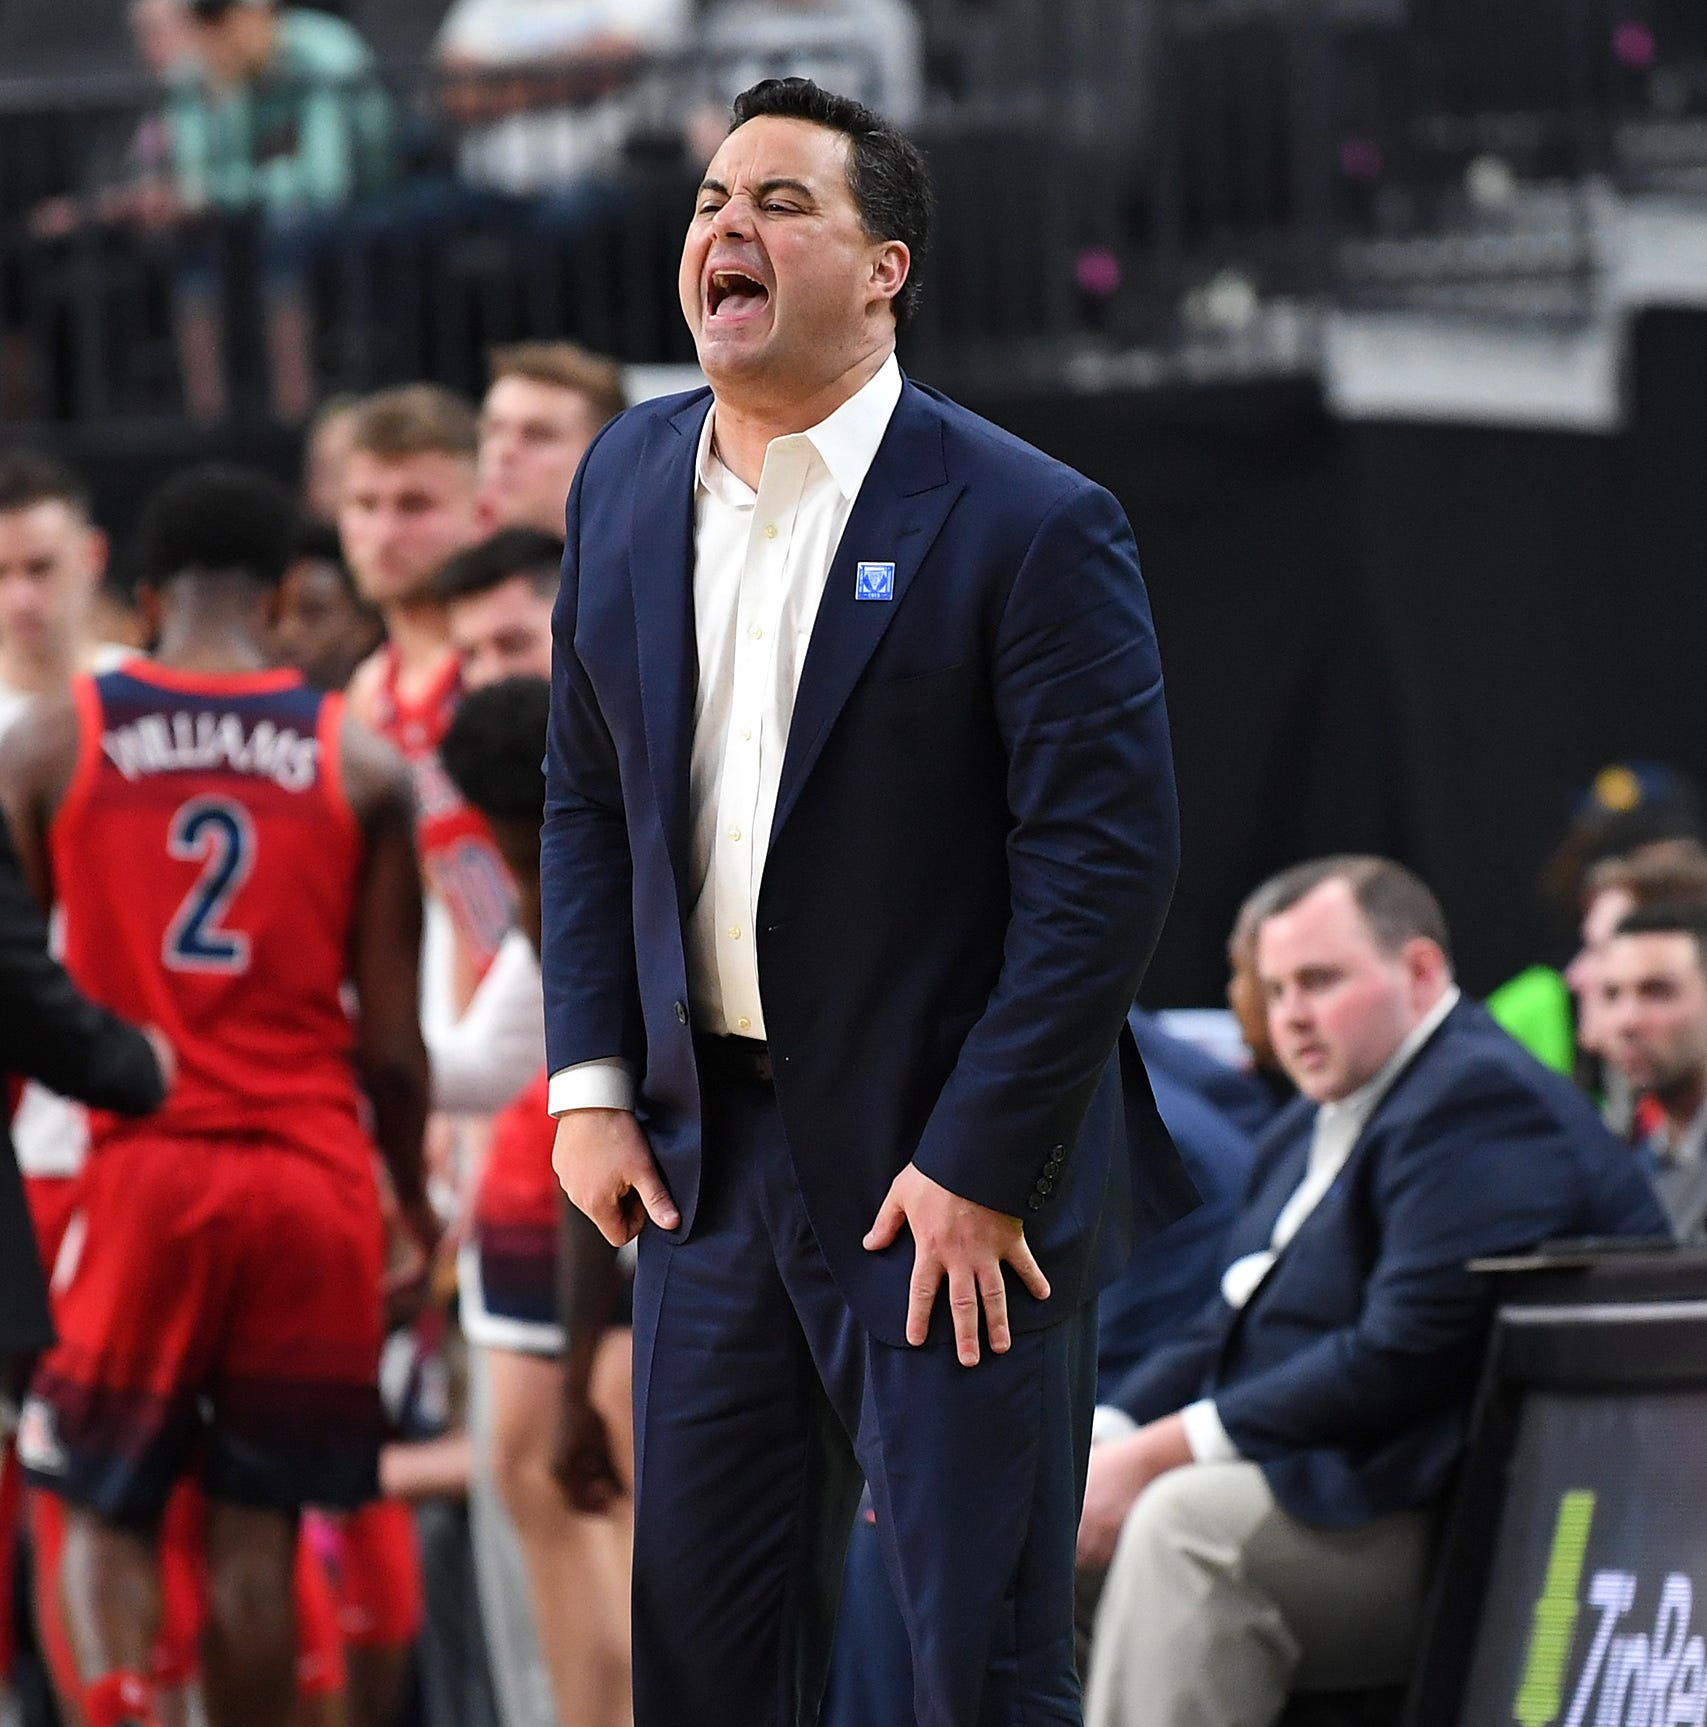 Latest Sean Miller federal trial developments prompt response from University of Arizona